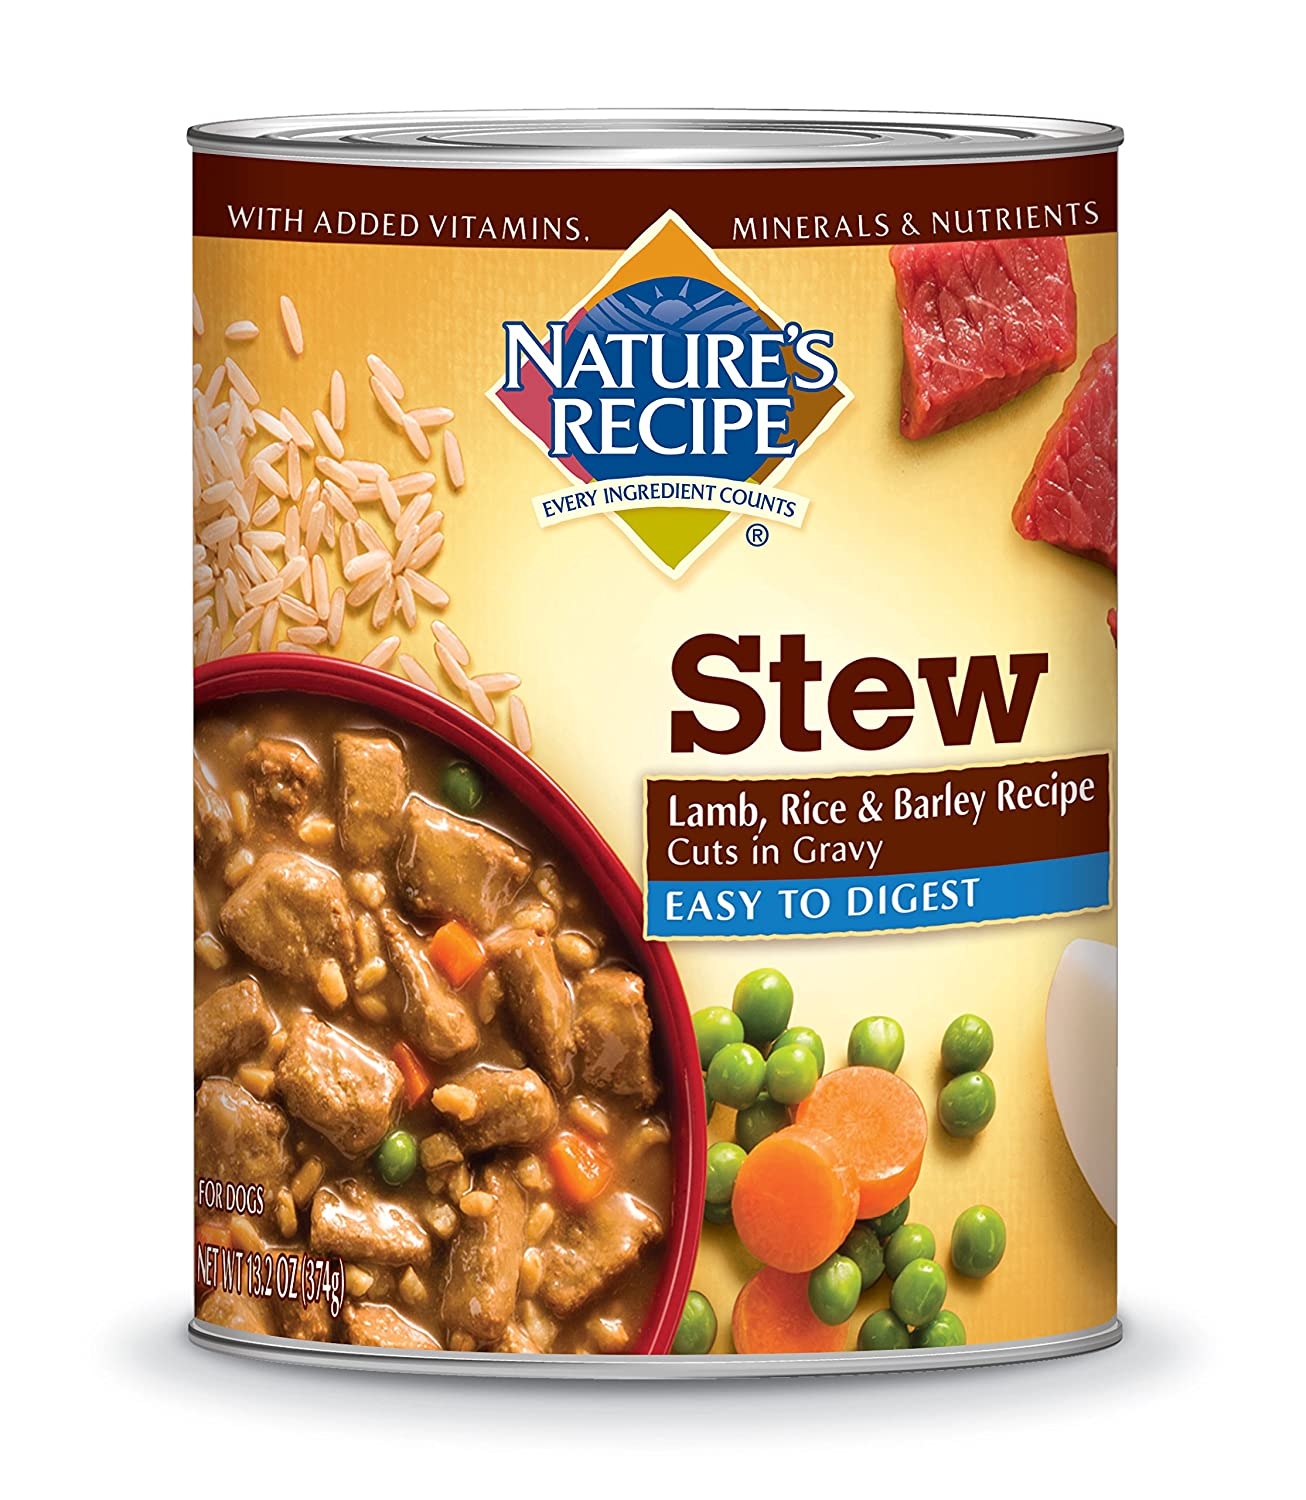 Nature's Recipe Easy to Digest Wet Dog Food Lamb Rice & Barley Recipe Cuts in Gravy 13.2-Ounce Can (Pack of 12)